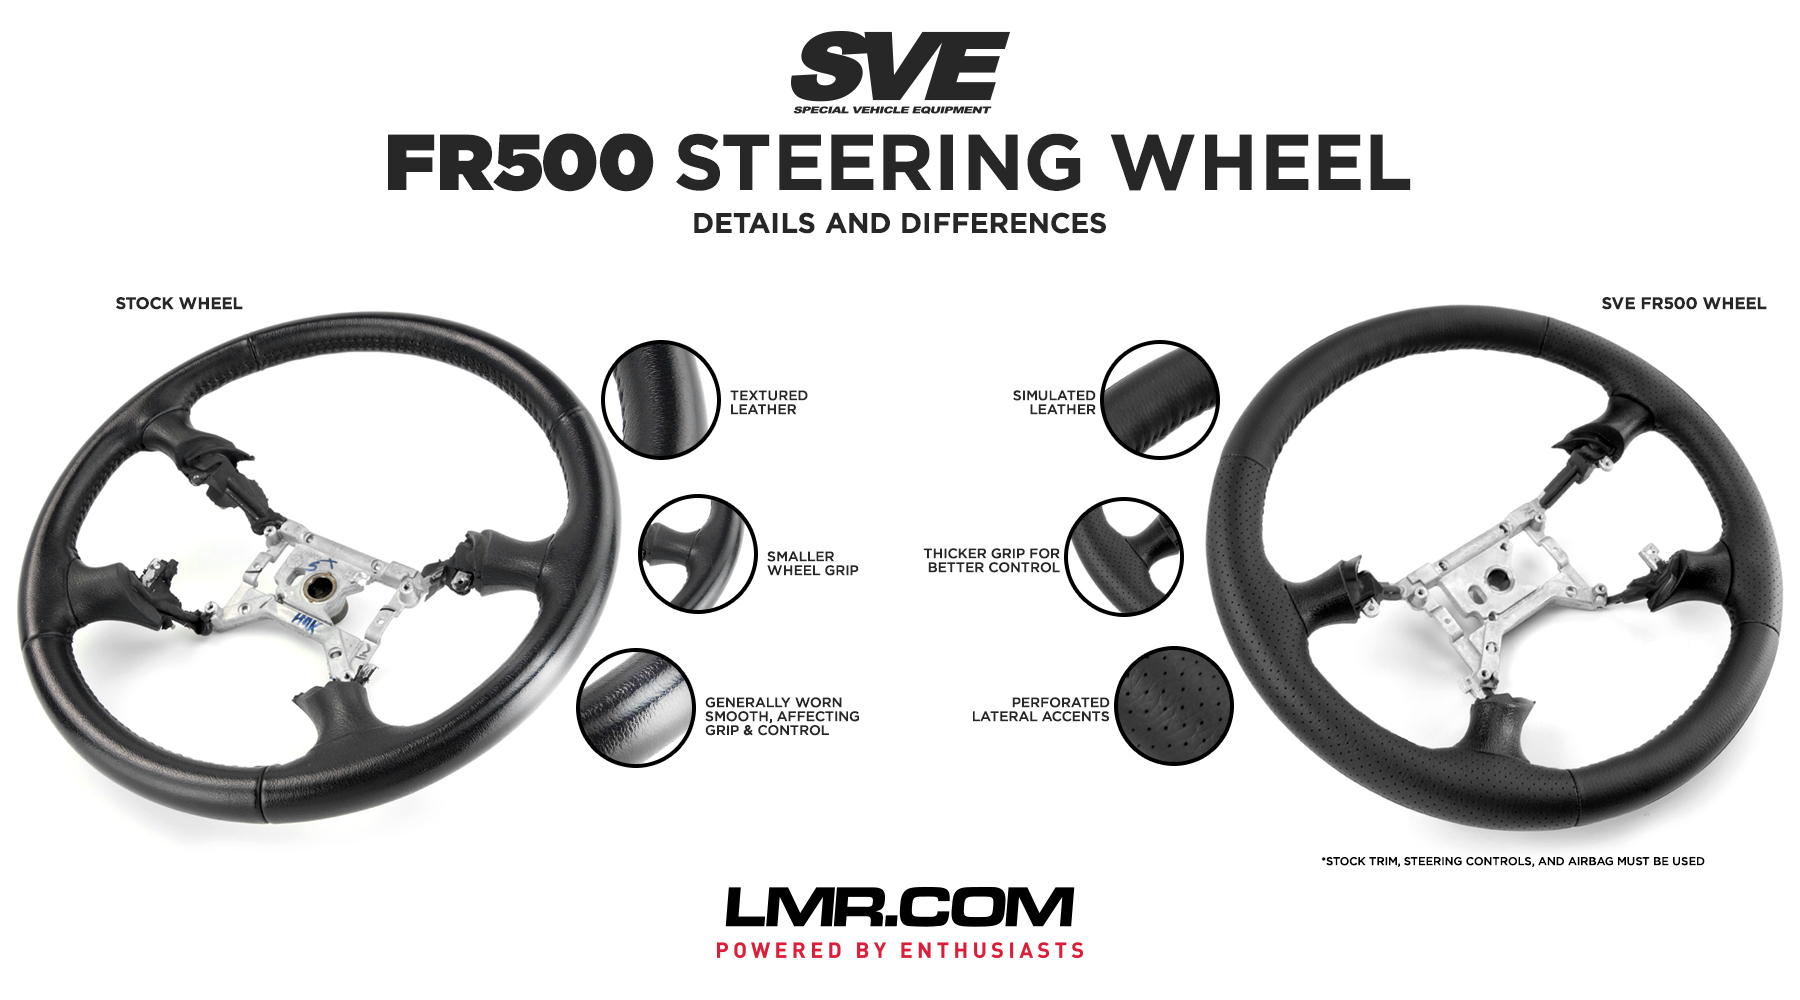 SVE FR500 Steering Wheel Details & Differences - SVE FR500 Steering Wheel Details & Differences